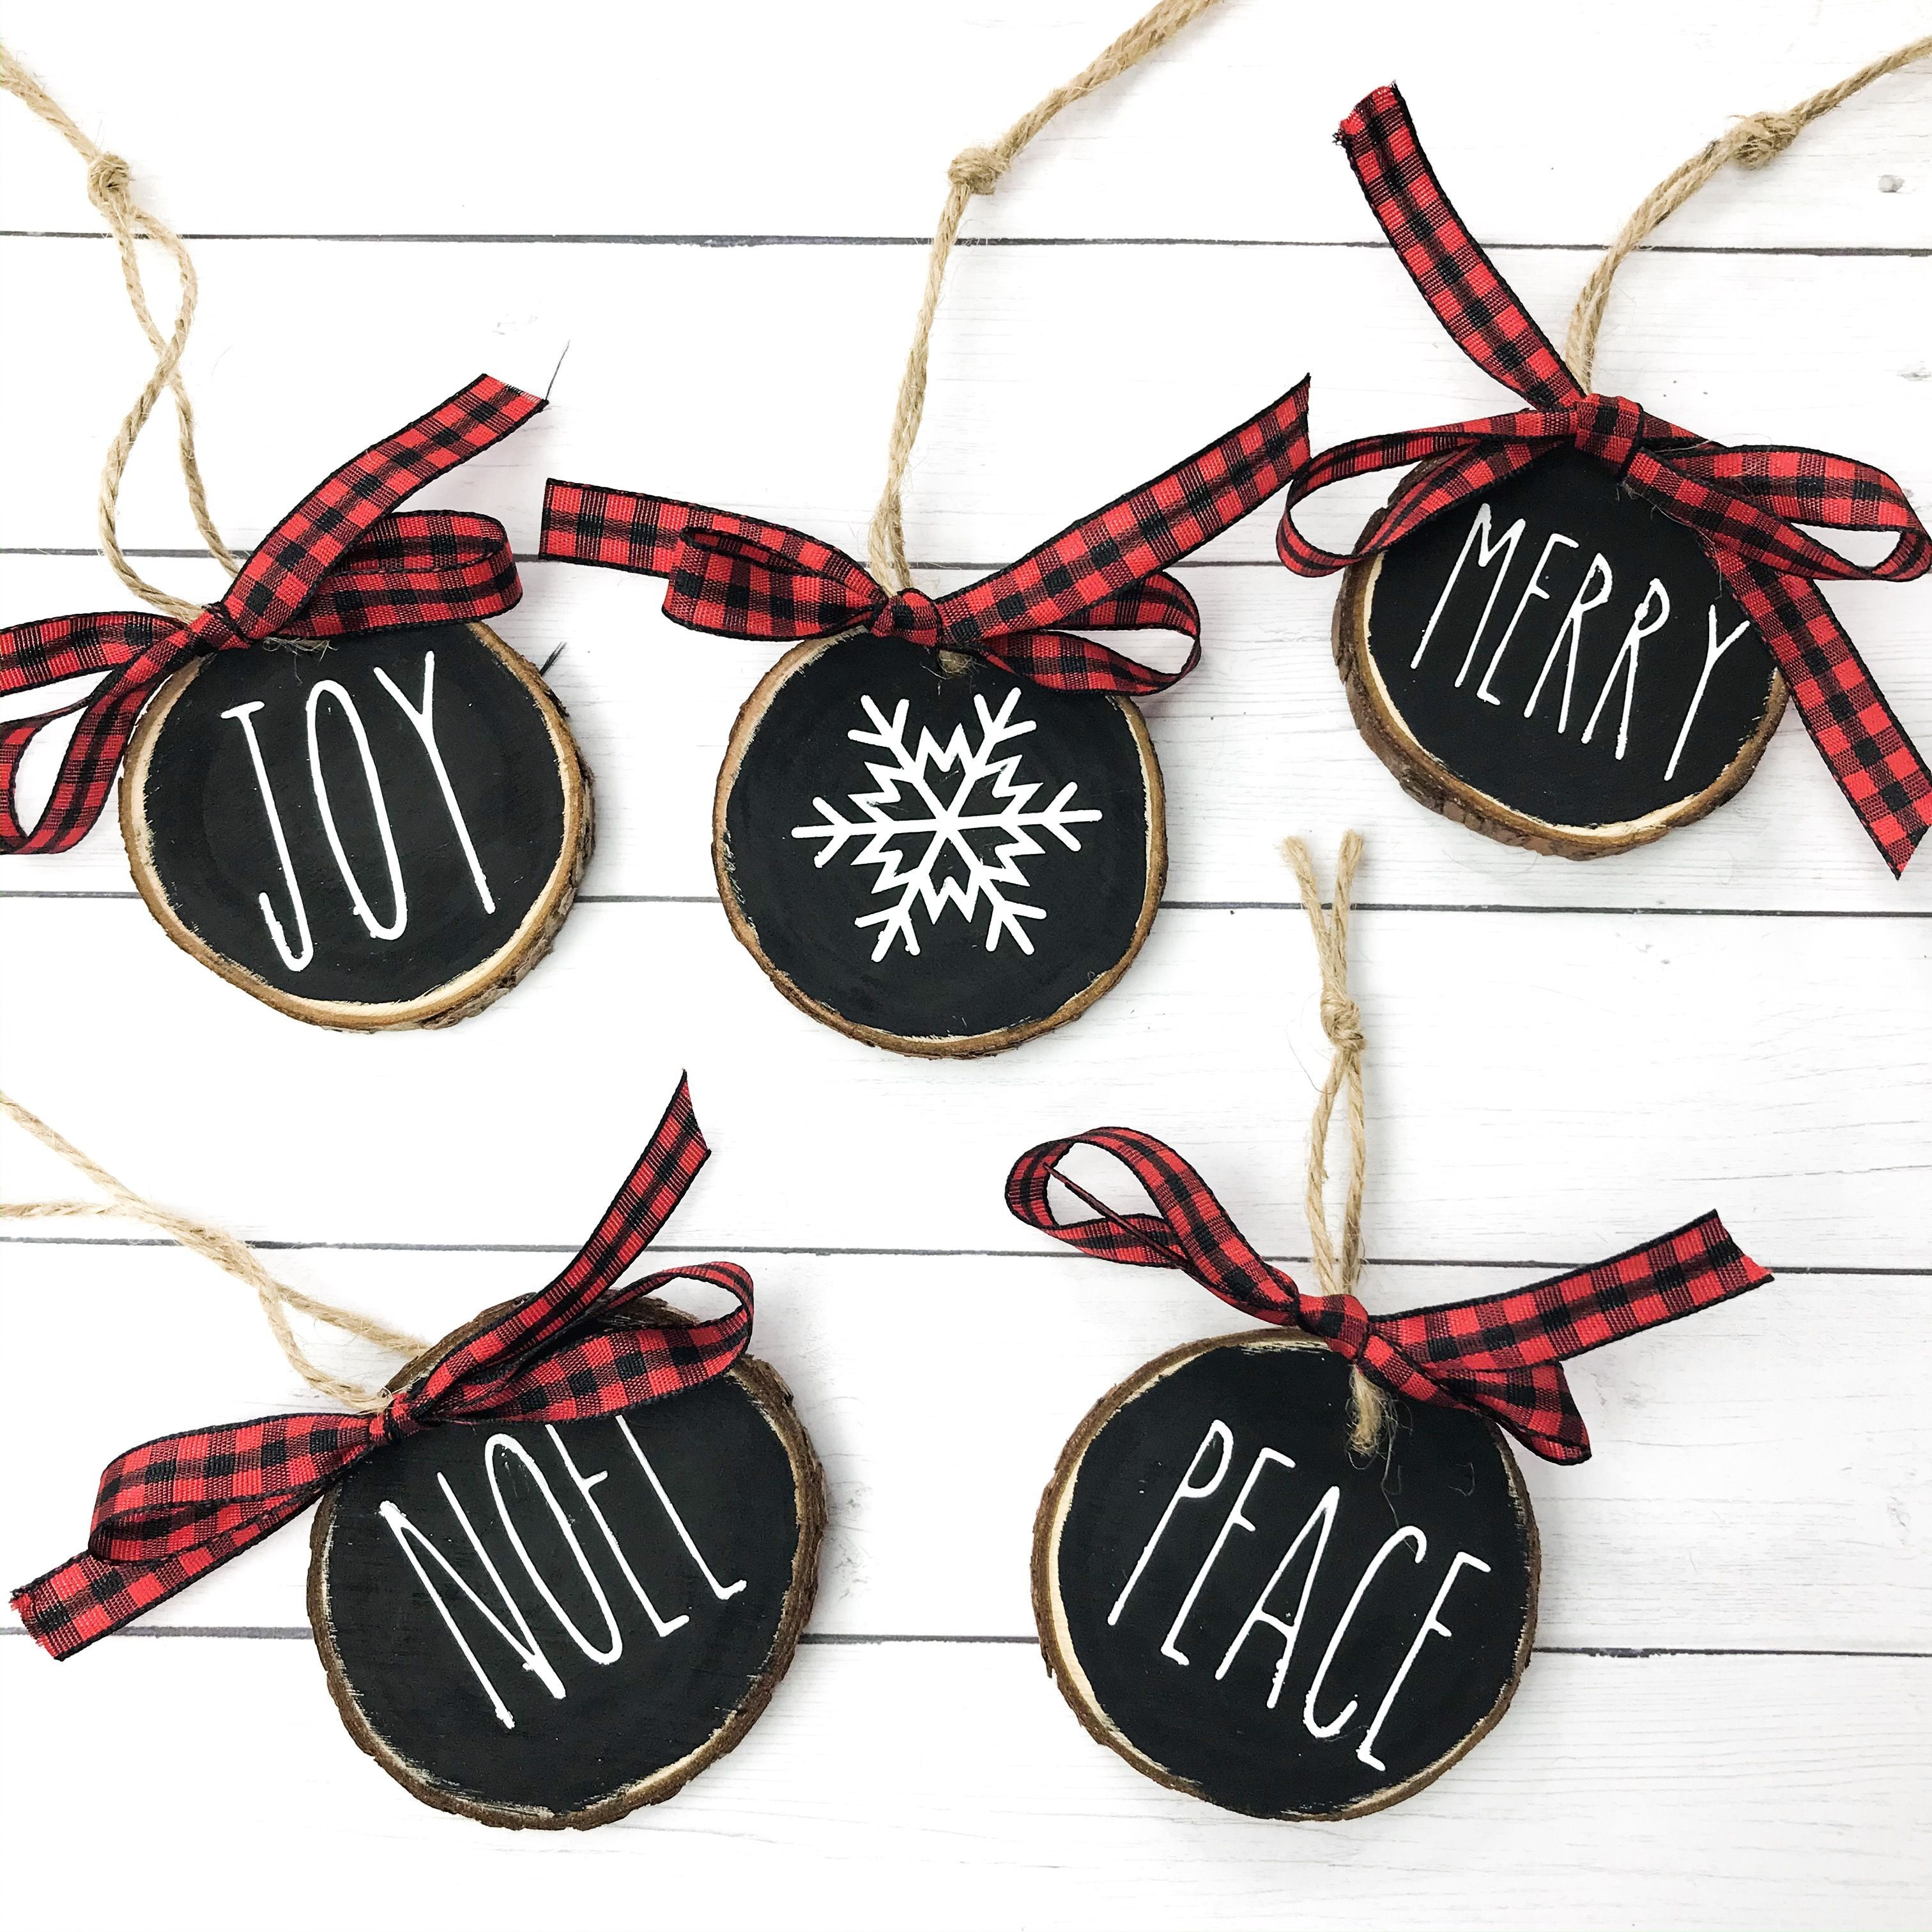 Wood Slab Christmas Ornaments Personalized Christmas Crafts To Sell Diy Christmas Gifts Diy Christmas Ornaments